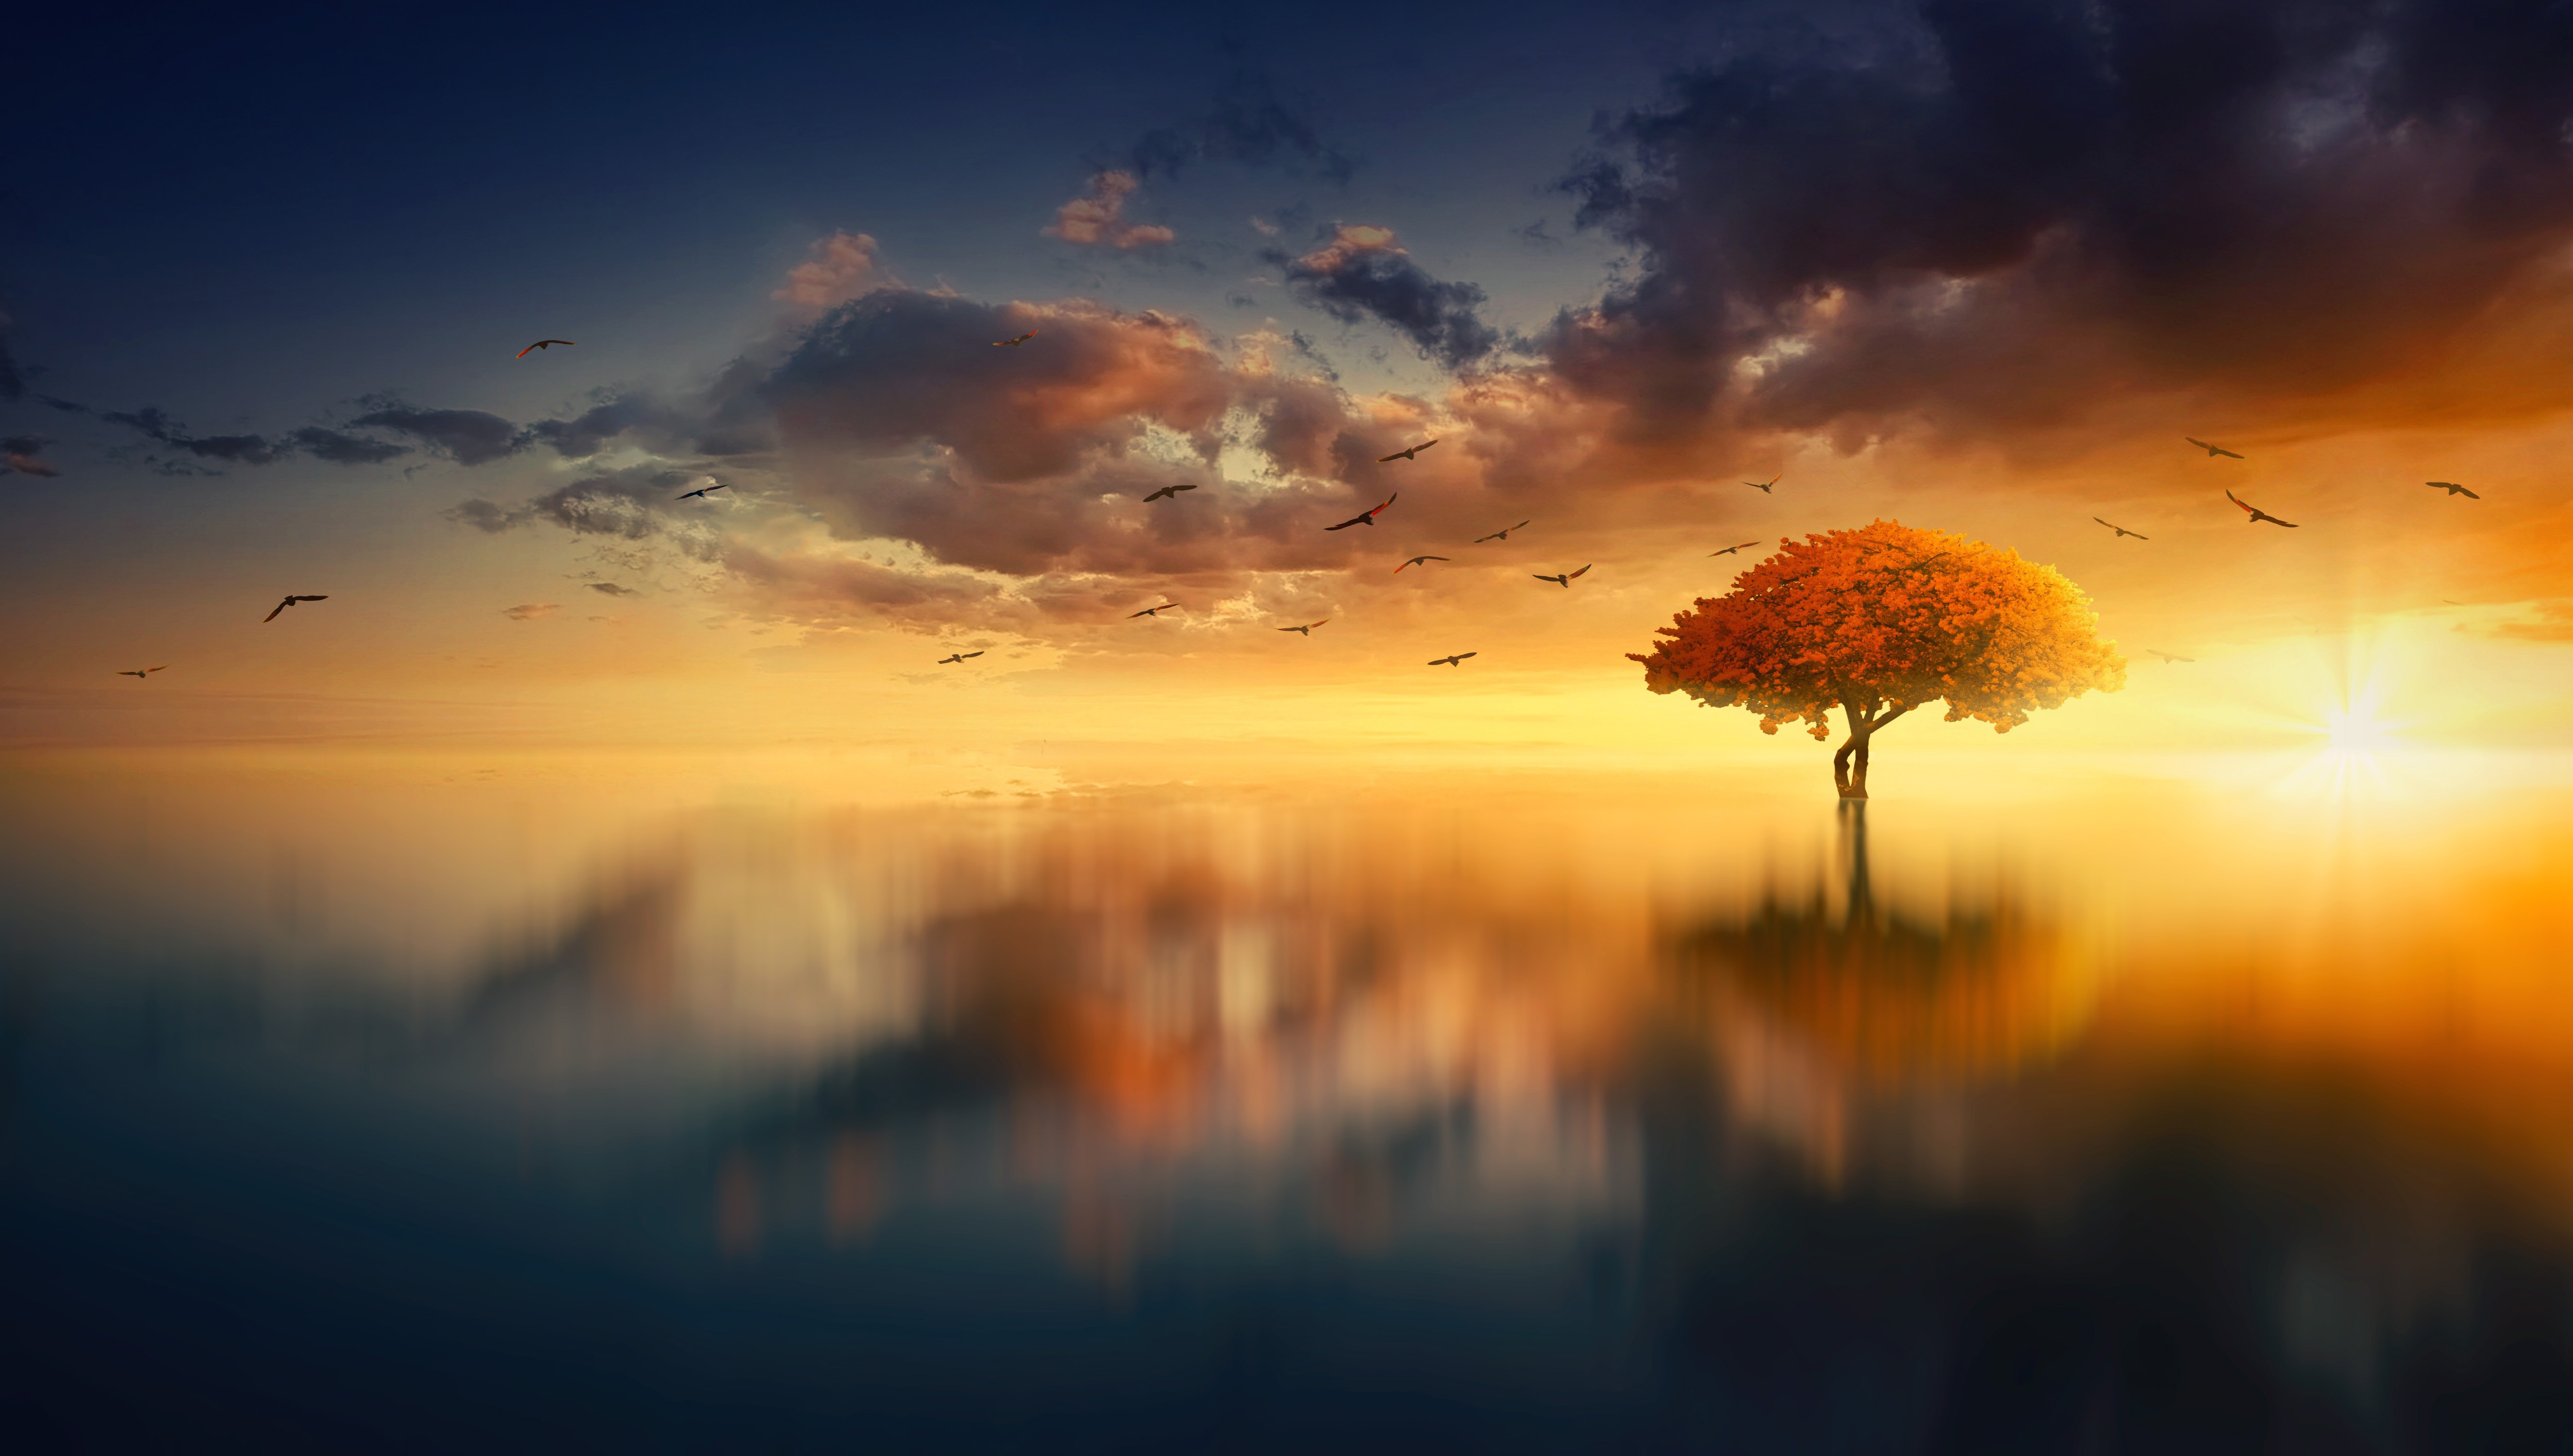 Fall Trees Wallpaper Sunrise Over The Lake With Tree And Birds Image Free